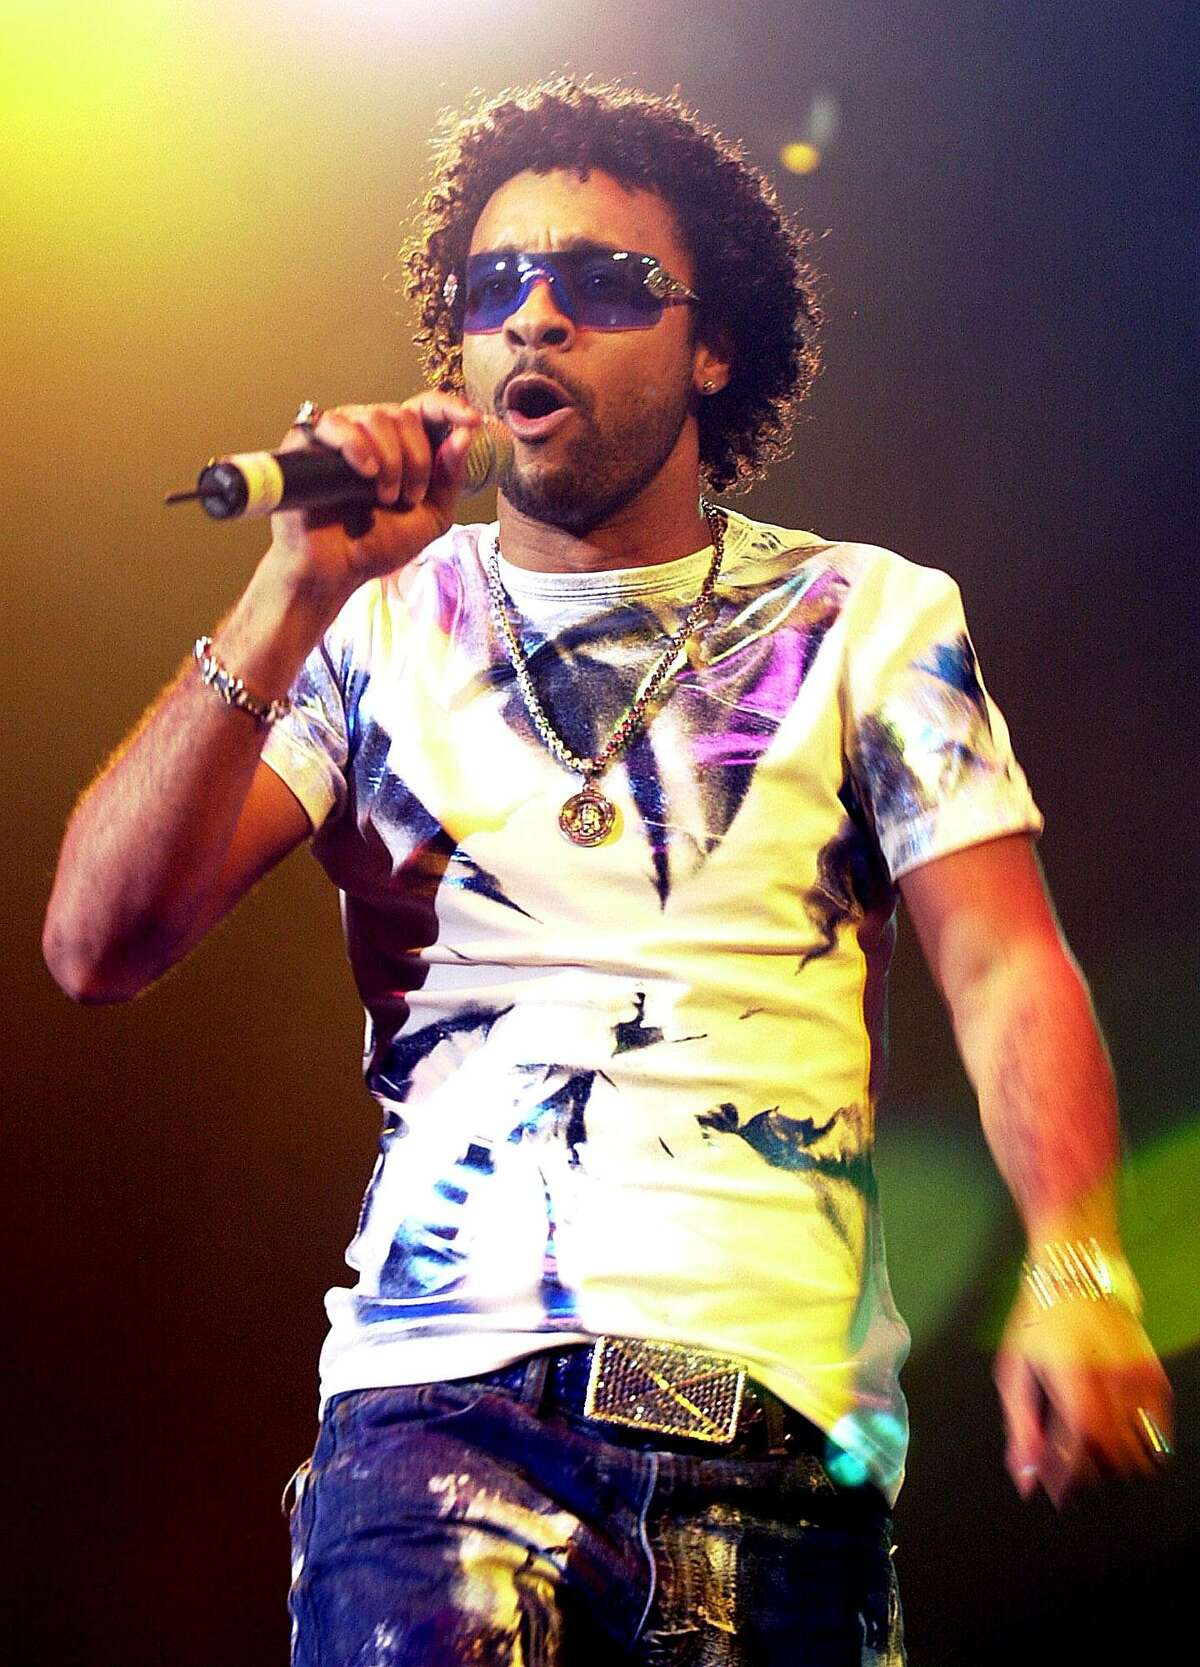 Shaggy performs during a concert at the Nassau Coliseum in Uniondale, N.Y., Friday, June 1, 2001. (AP Photo/Ed Betz)